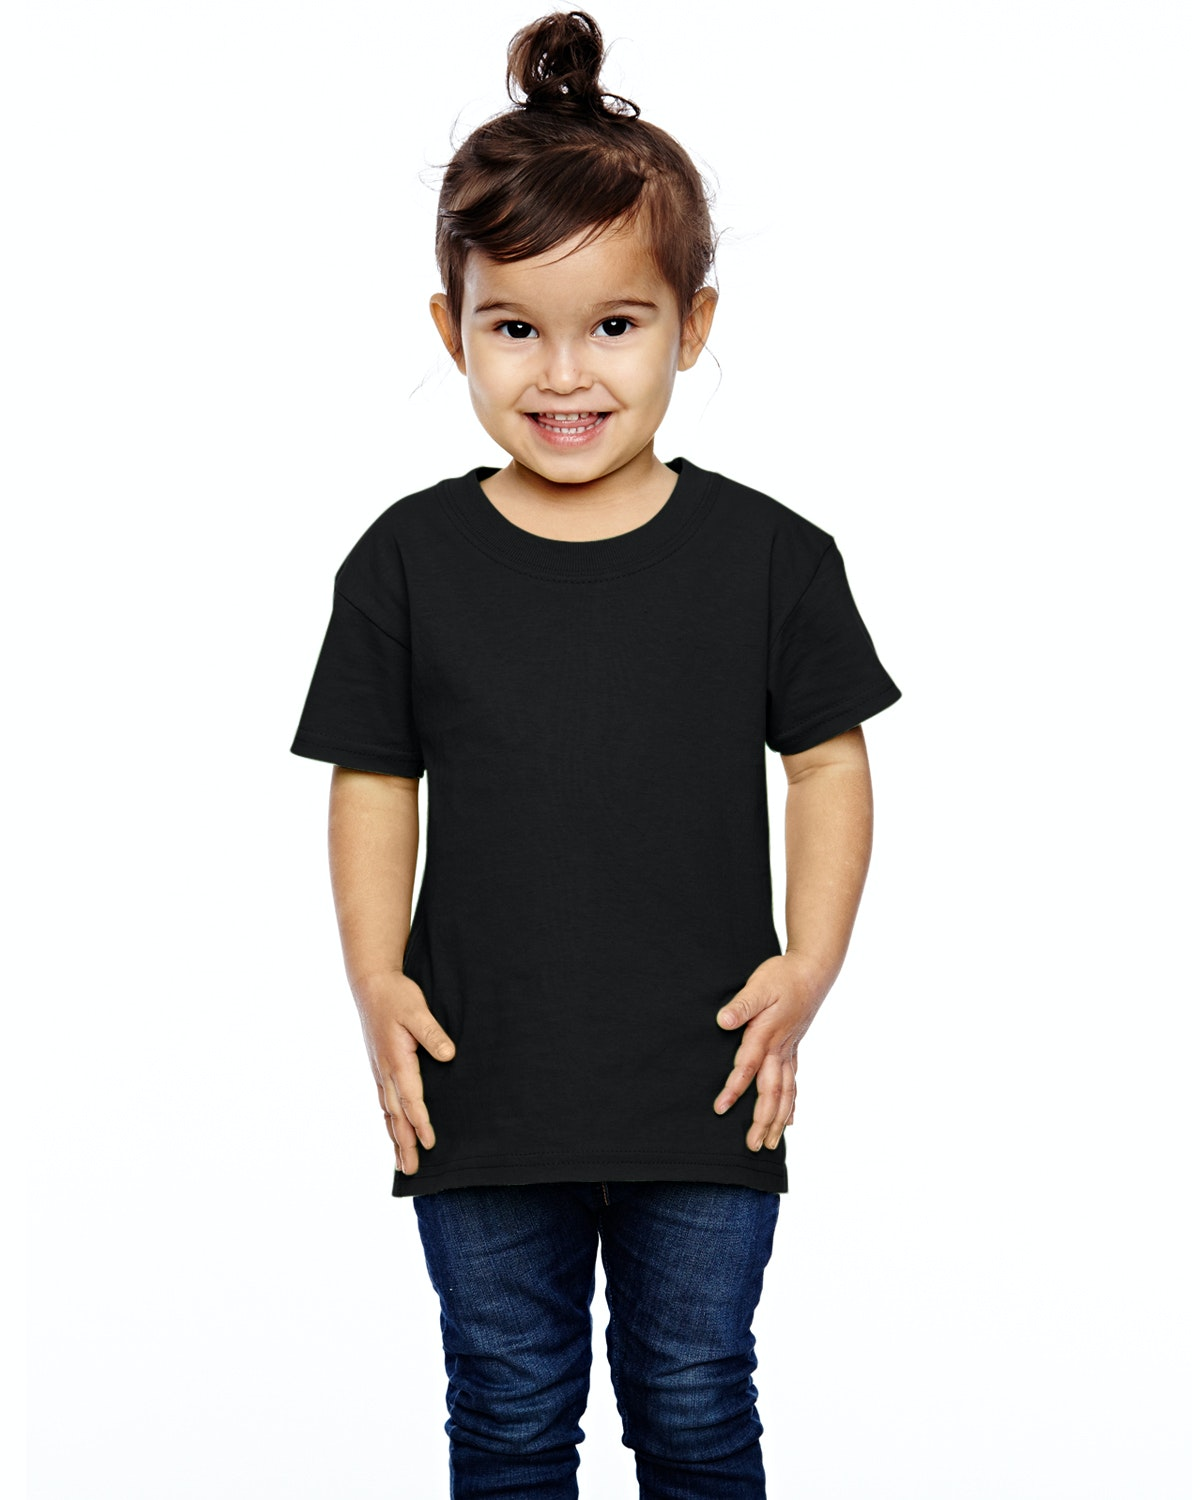 Fruit of the Loom T3930 Black